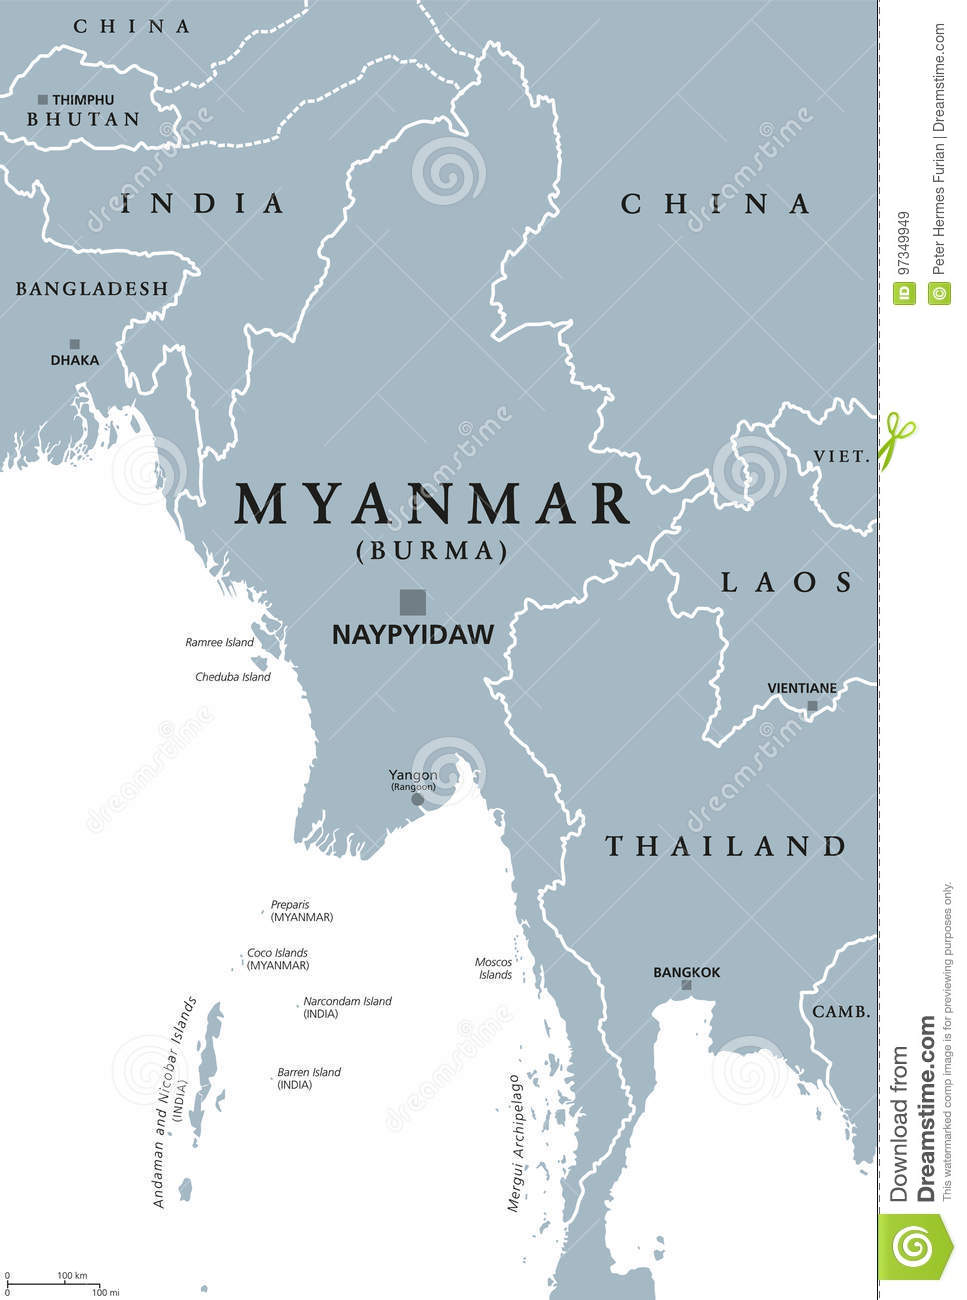 Birmanie Capitale Carte.Carte Politique De Myanmar Birmanie Illustration De Vecteur